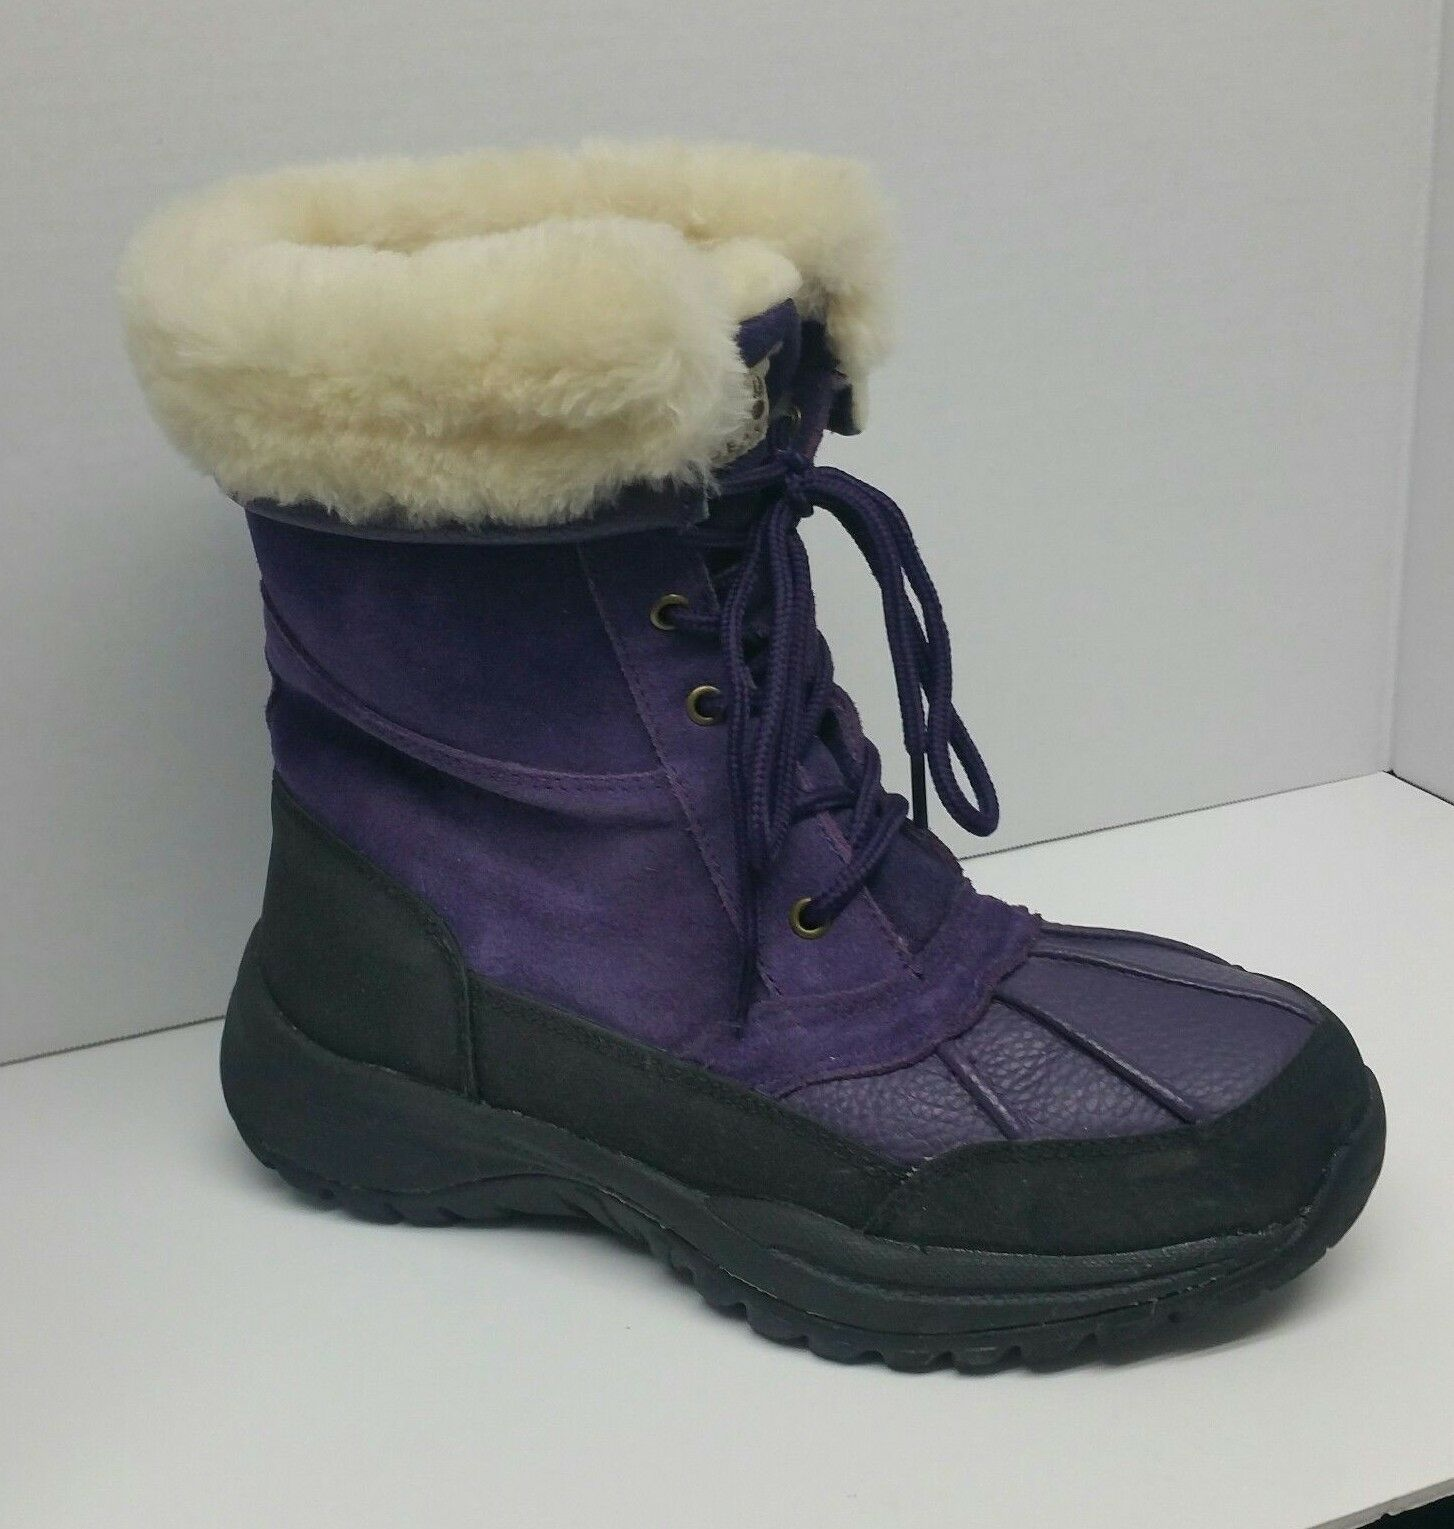 Bearpaw Purple Suede Leder Winter Boot Snowboots Damenschuhe Sz 7 Sheepskin Lace Up